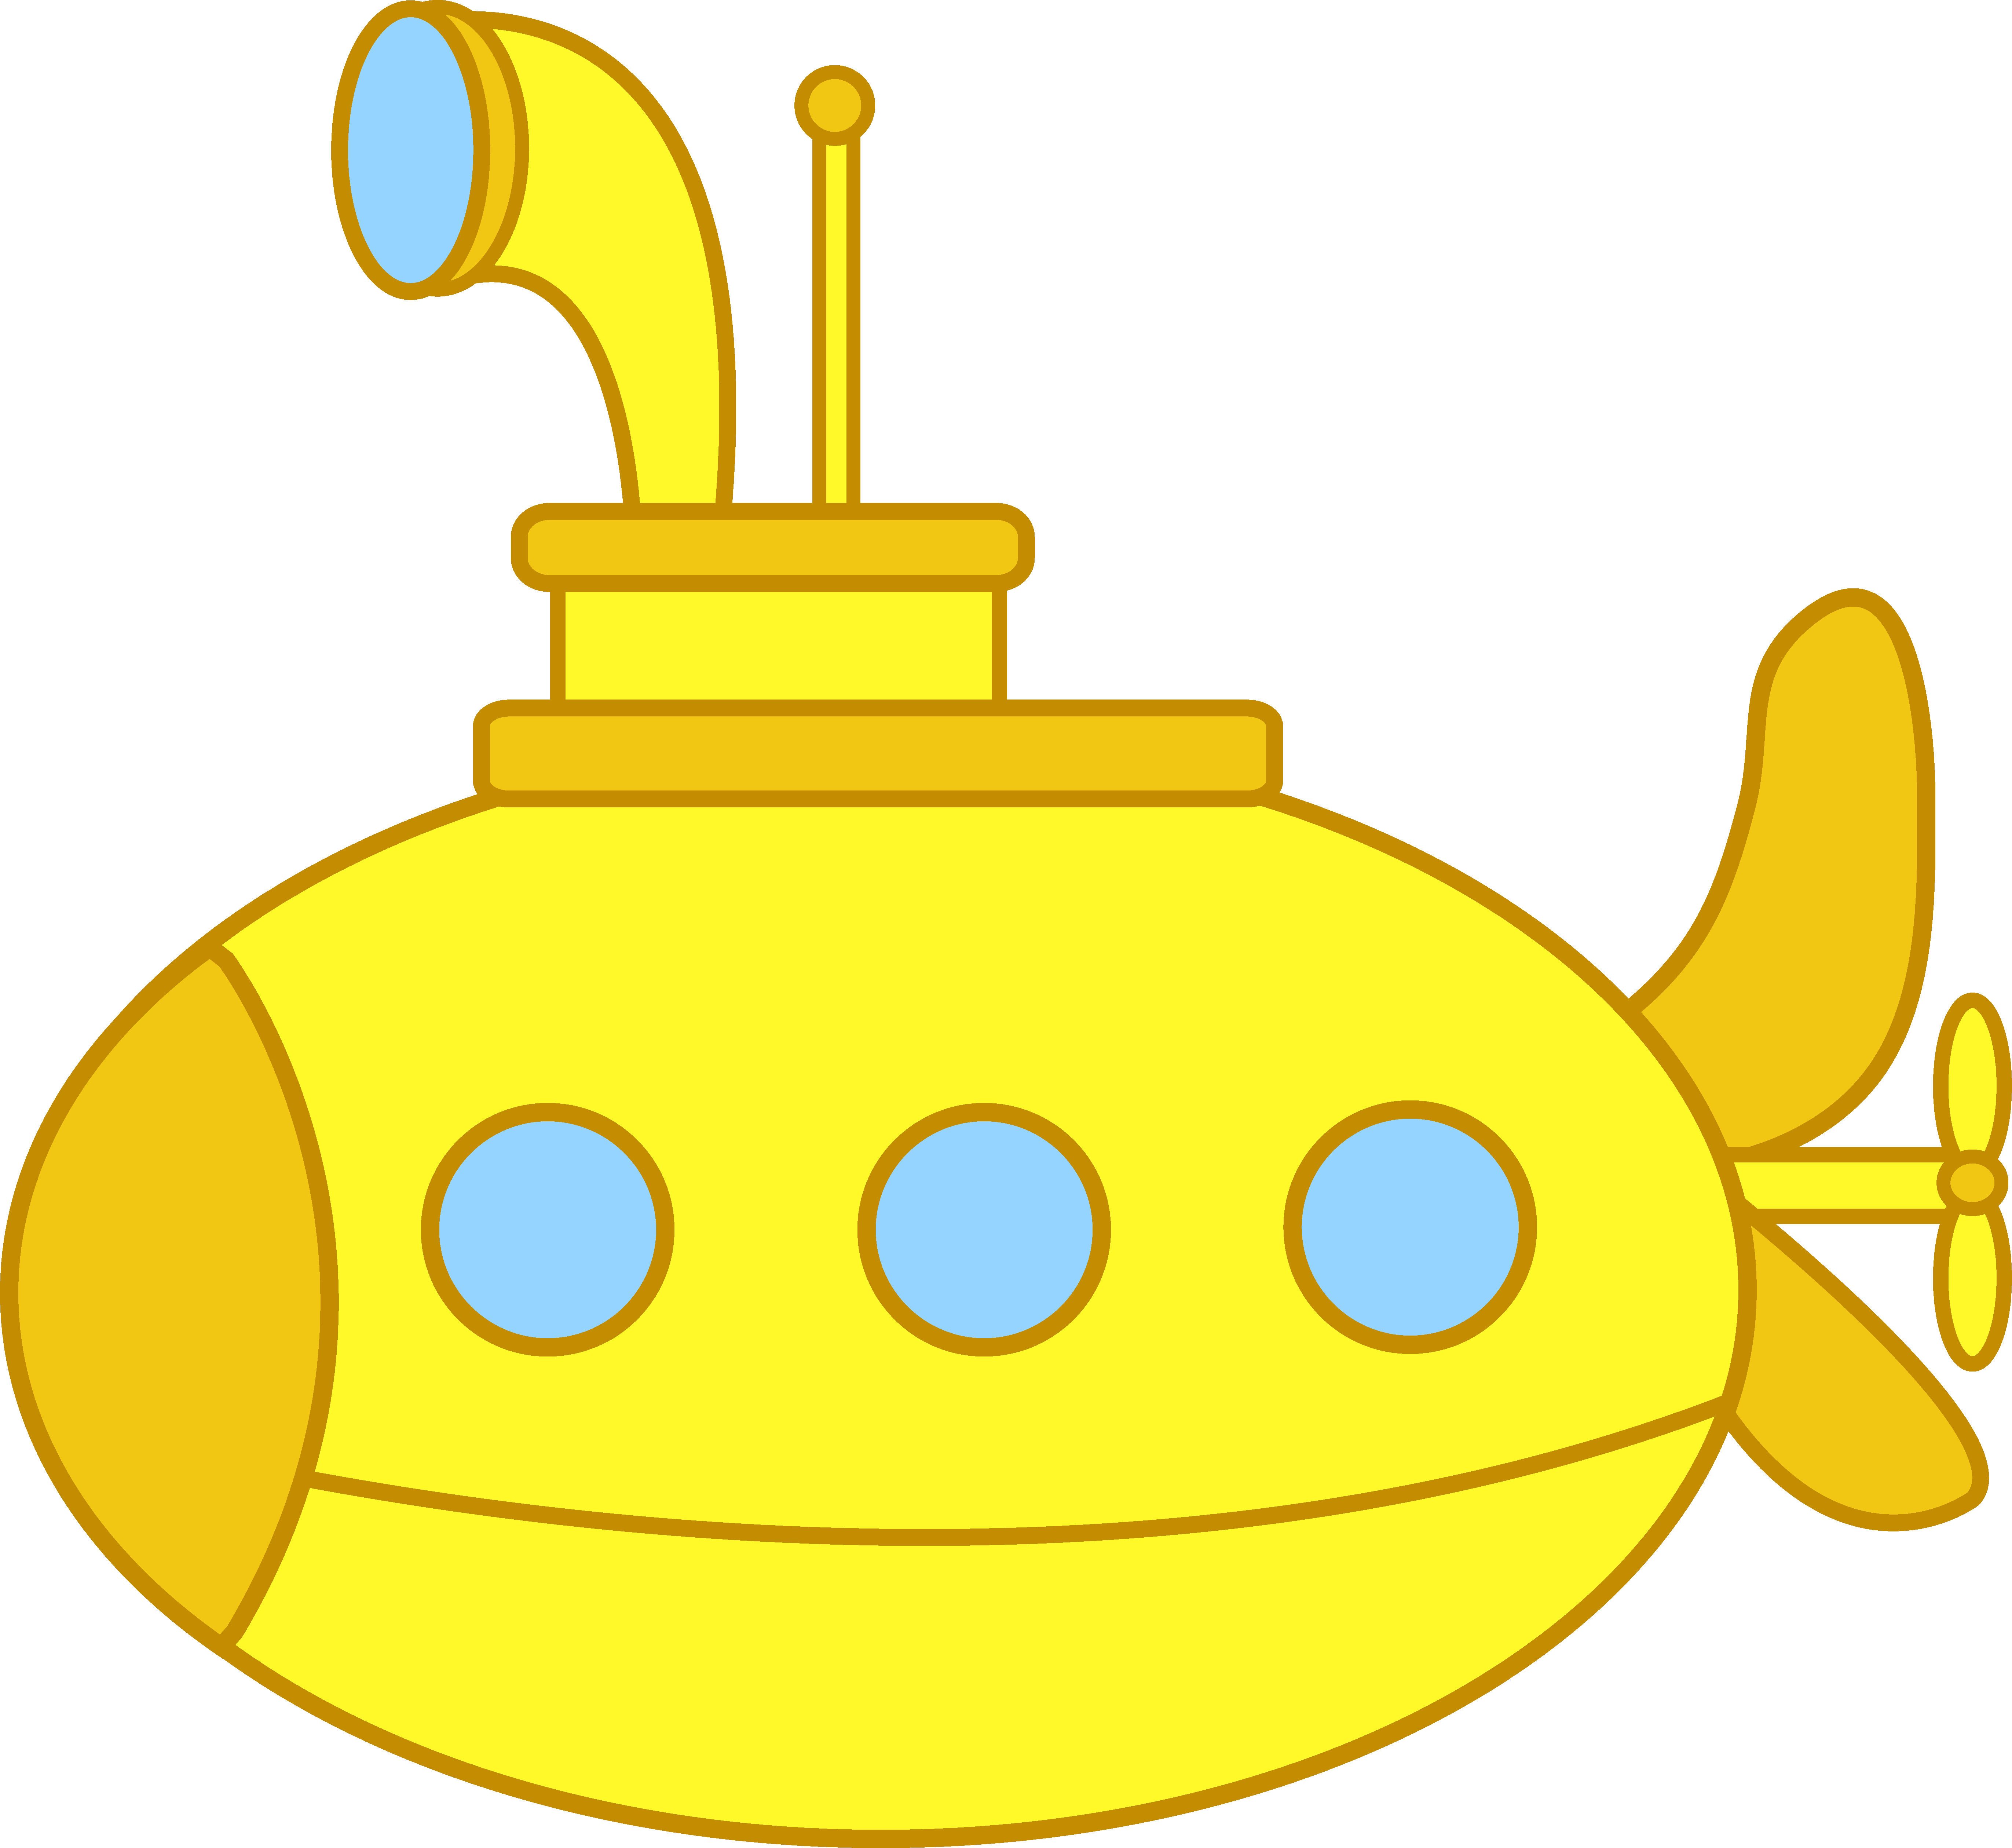 Submarine clipart. At getdrawings com free